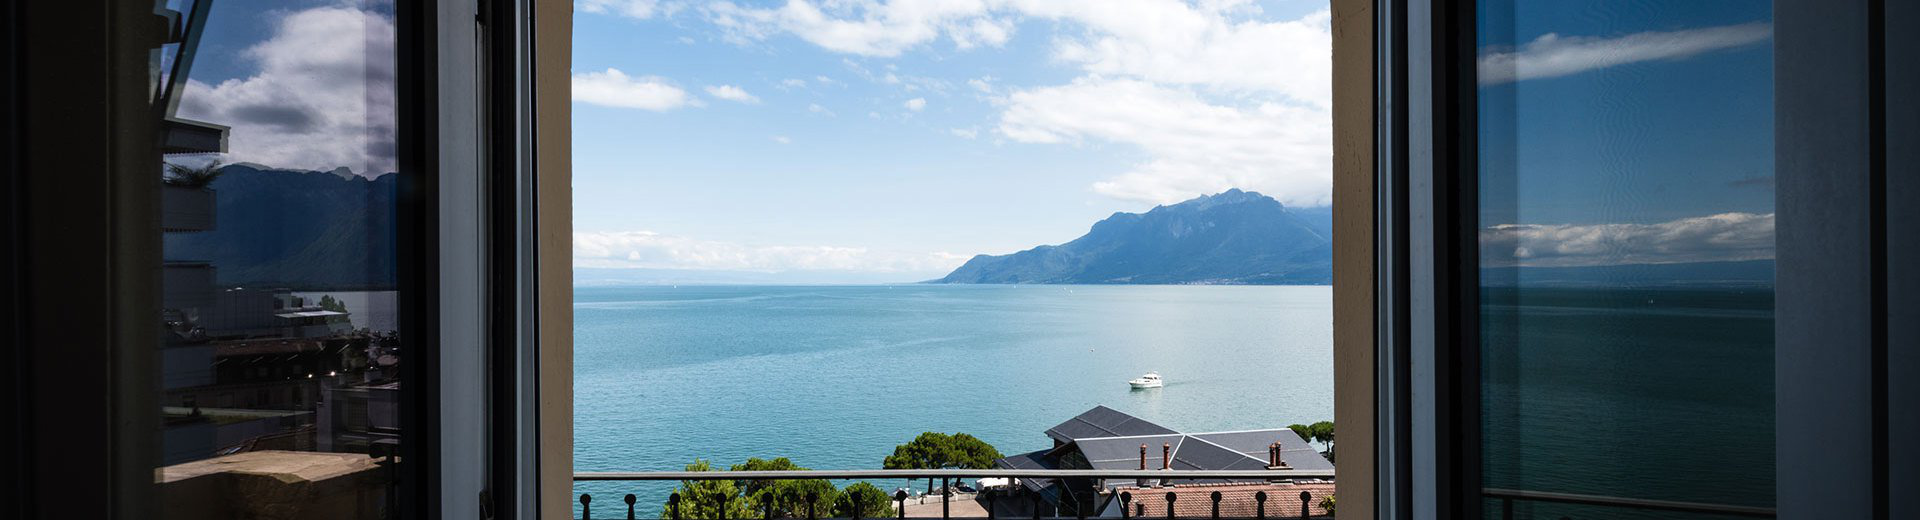 hotel-institute-montreux-hospitality-management-school-switzerland